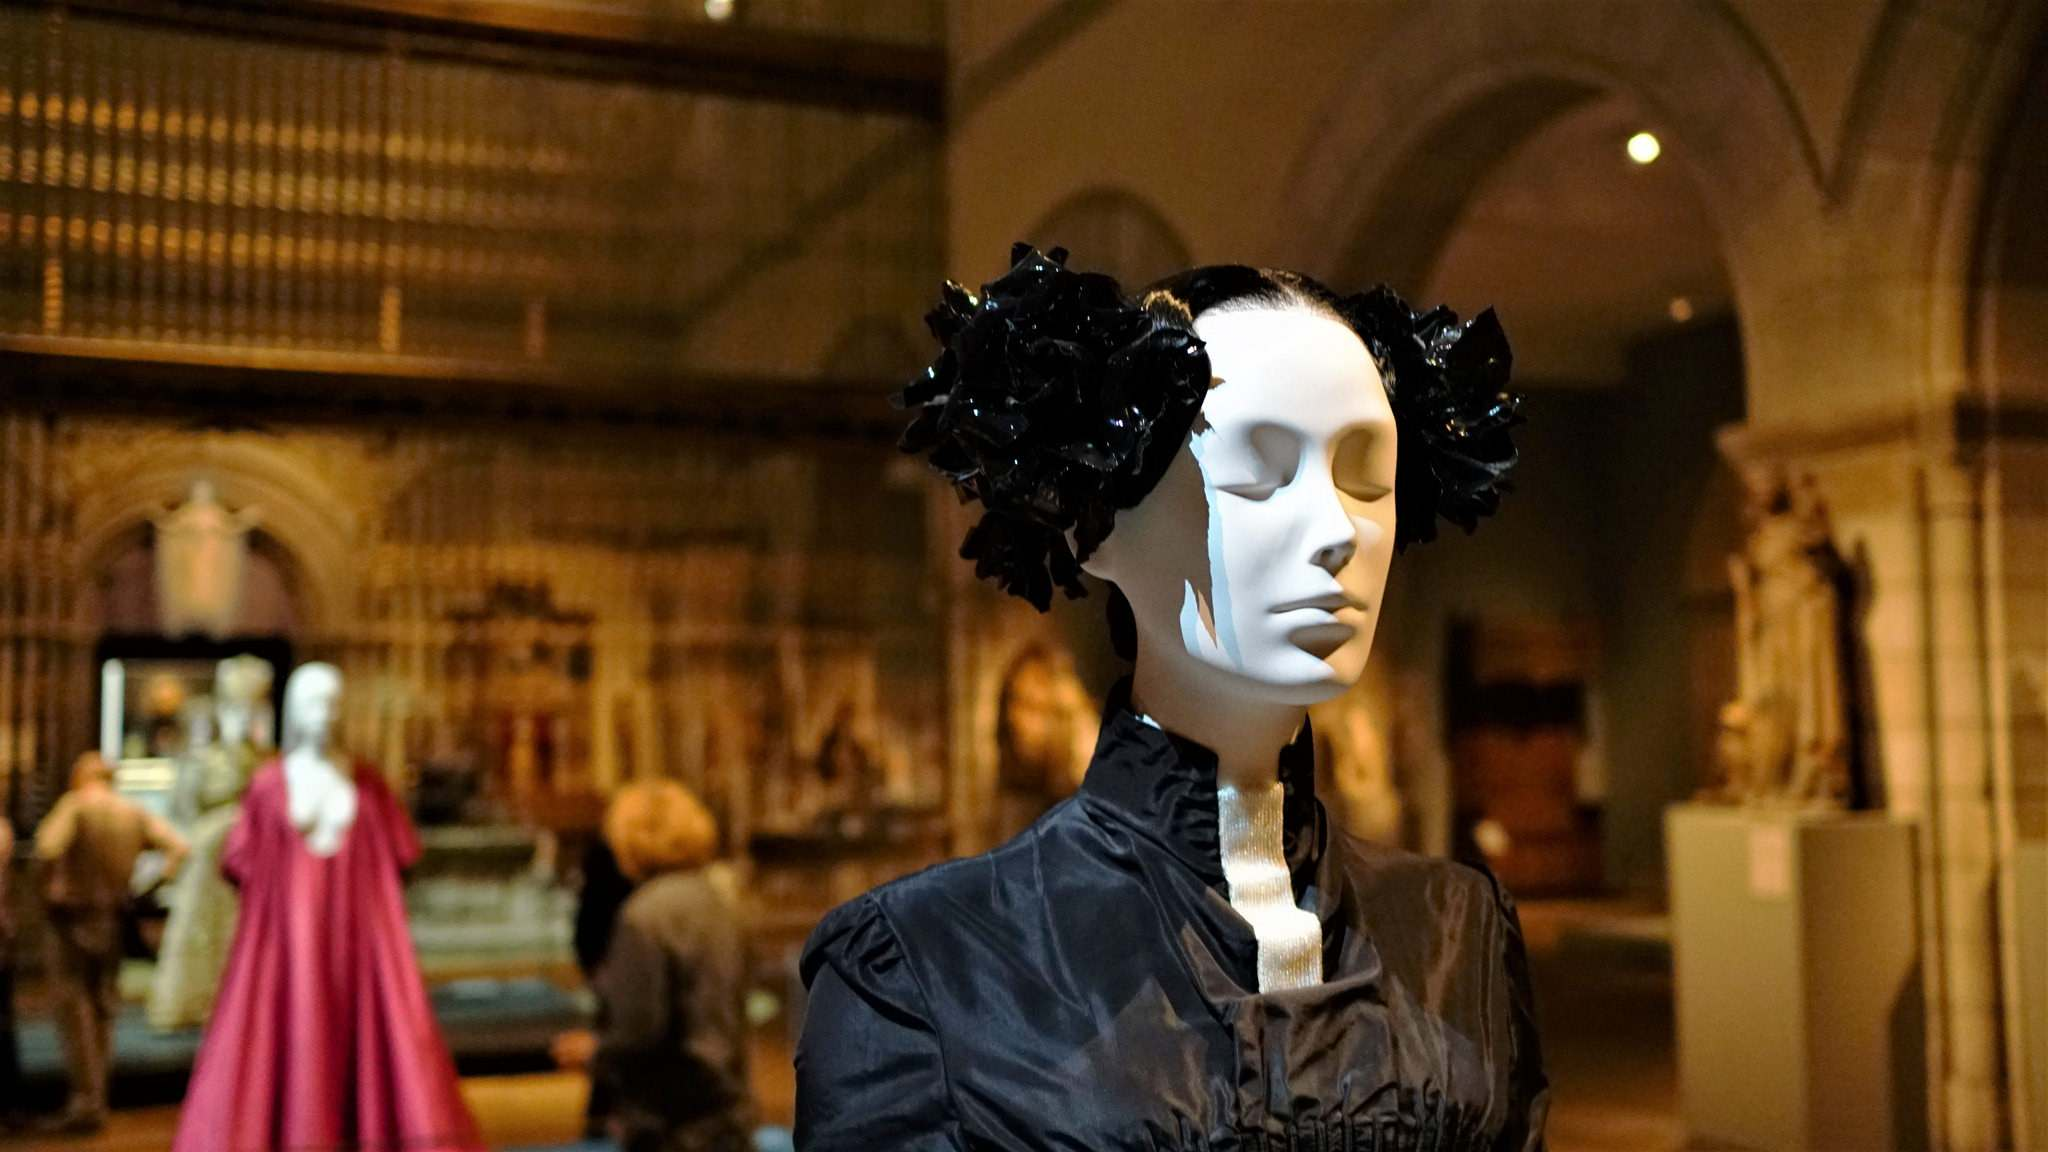 heavenly bodies5 Heavenly Bodies: Fashion and the Catholic Imagination in MET